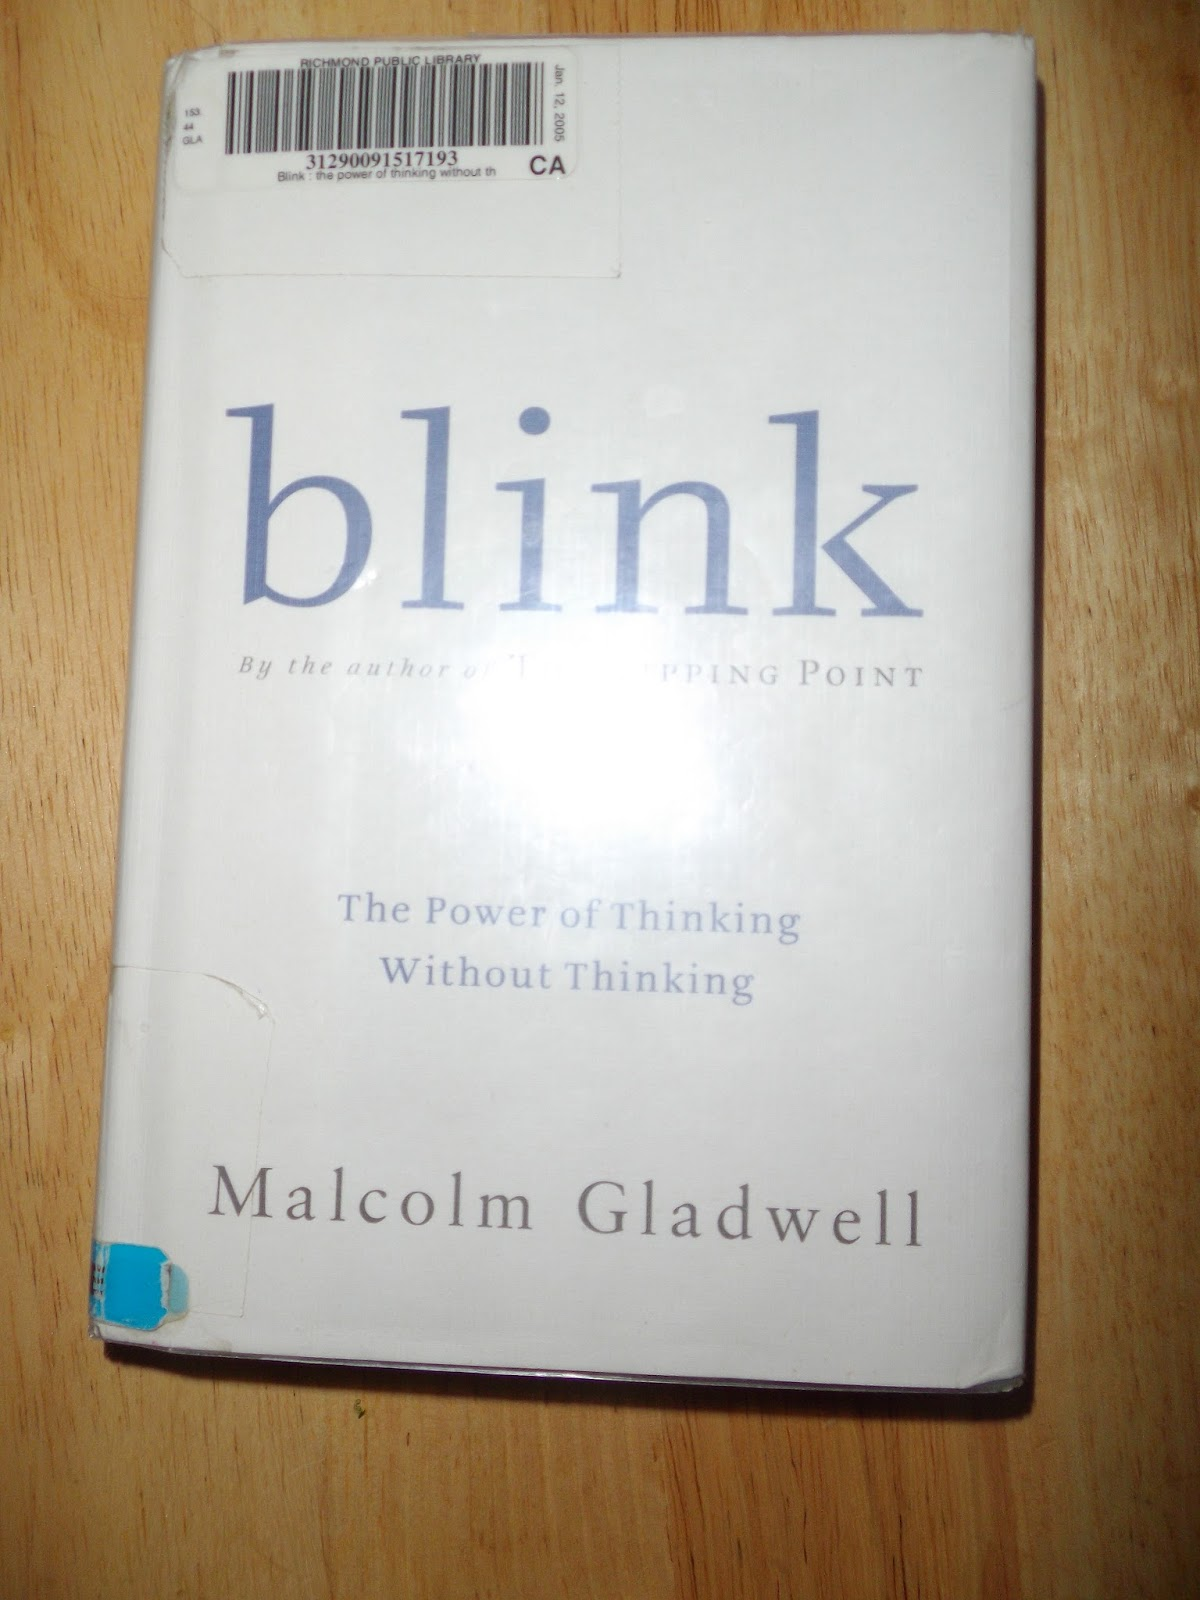 blink malcolm gladwell incomplete idea 12 mind-blowing concepts from malcolm gladwell's bestsellers  the business  of spreading the epidemic of an idea, product or preference.